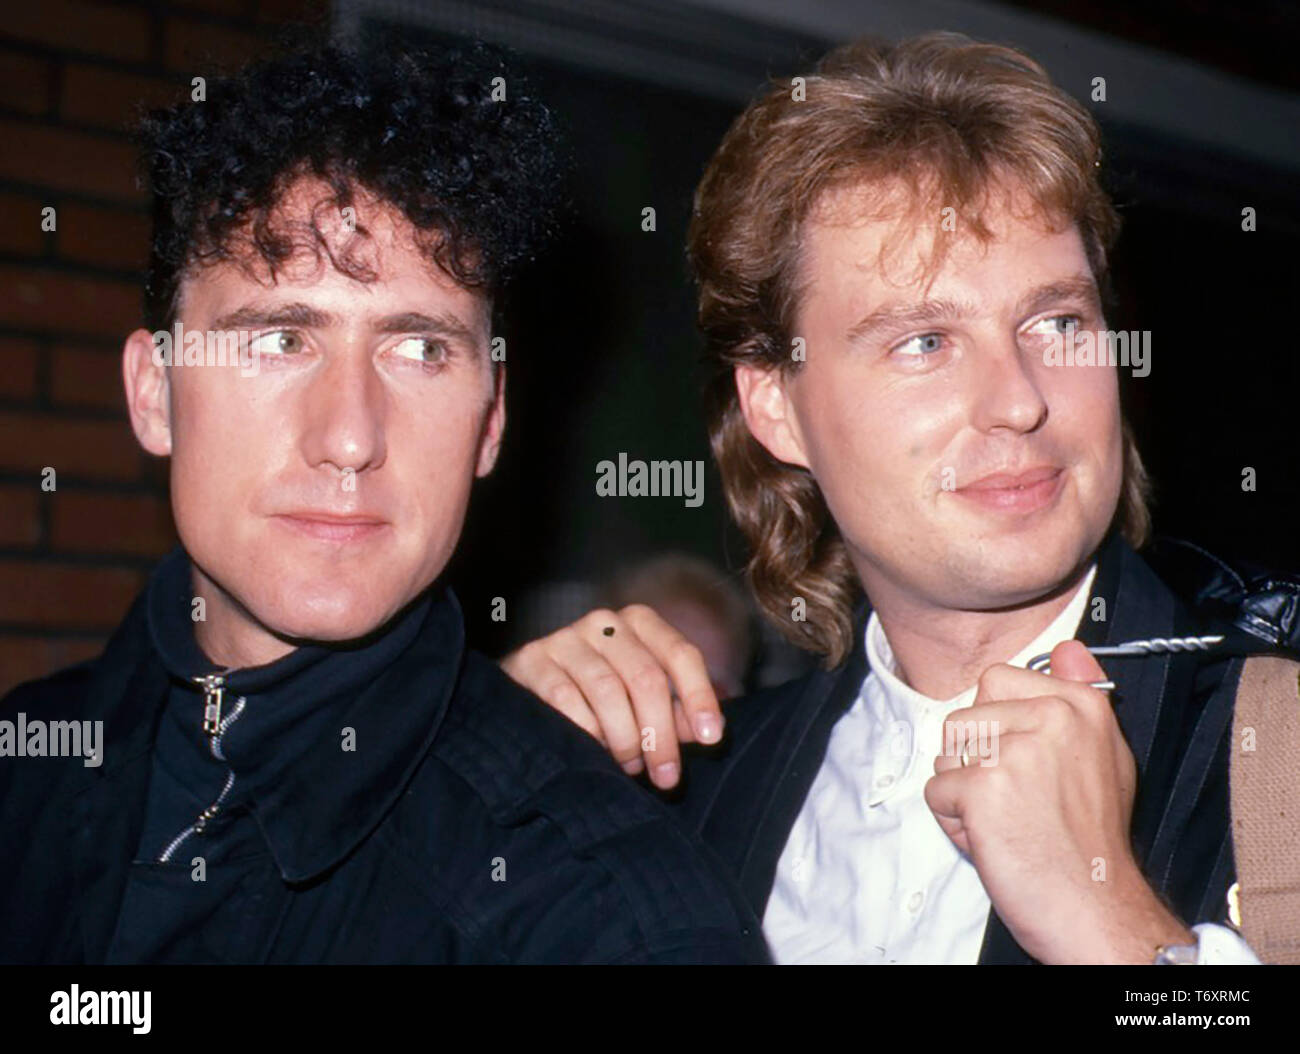 ORCHESTRAL MANOEUVRES IN THE DARK (OMD) English synth-pop do with Andy McCluskey at left and Paul Humphreys about 1979 - Stock Image